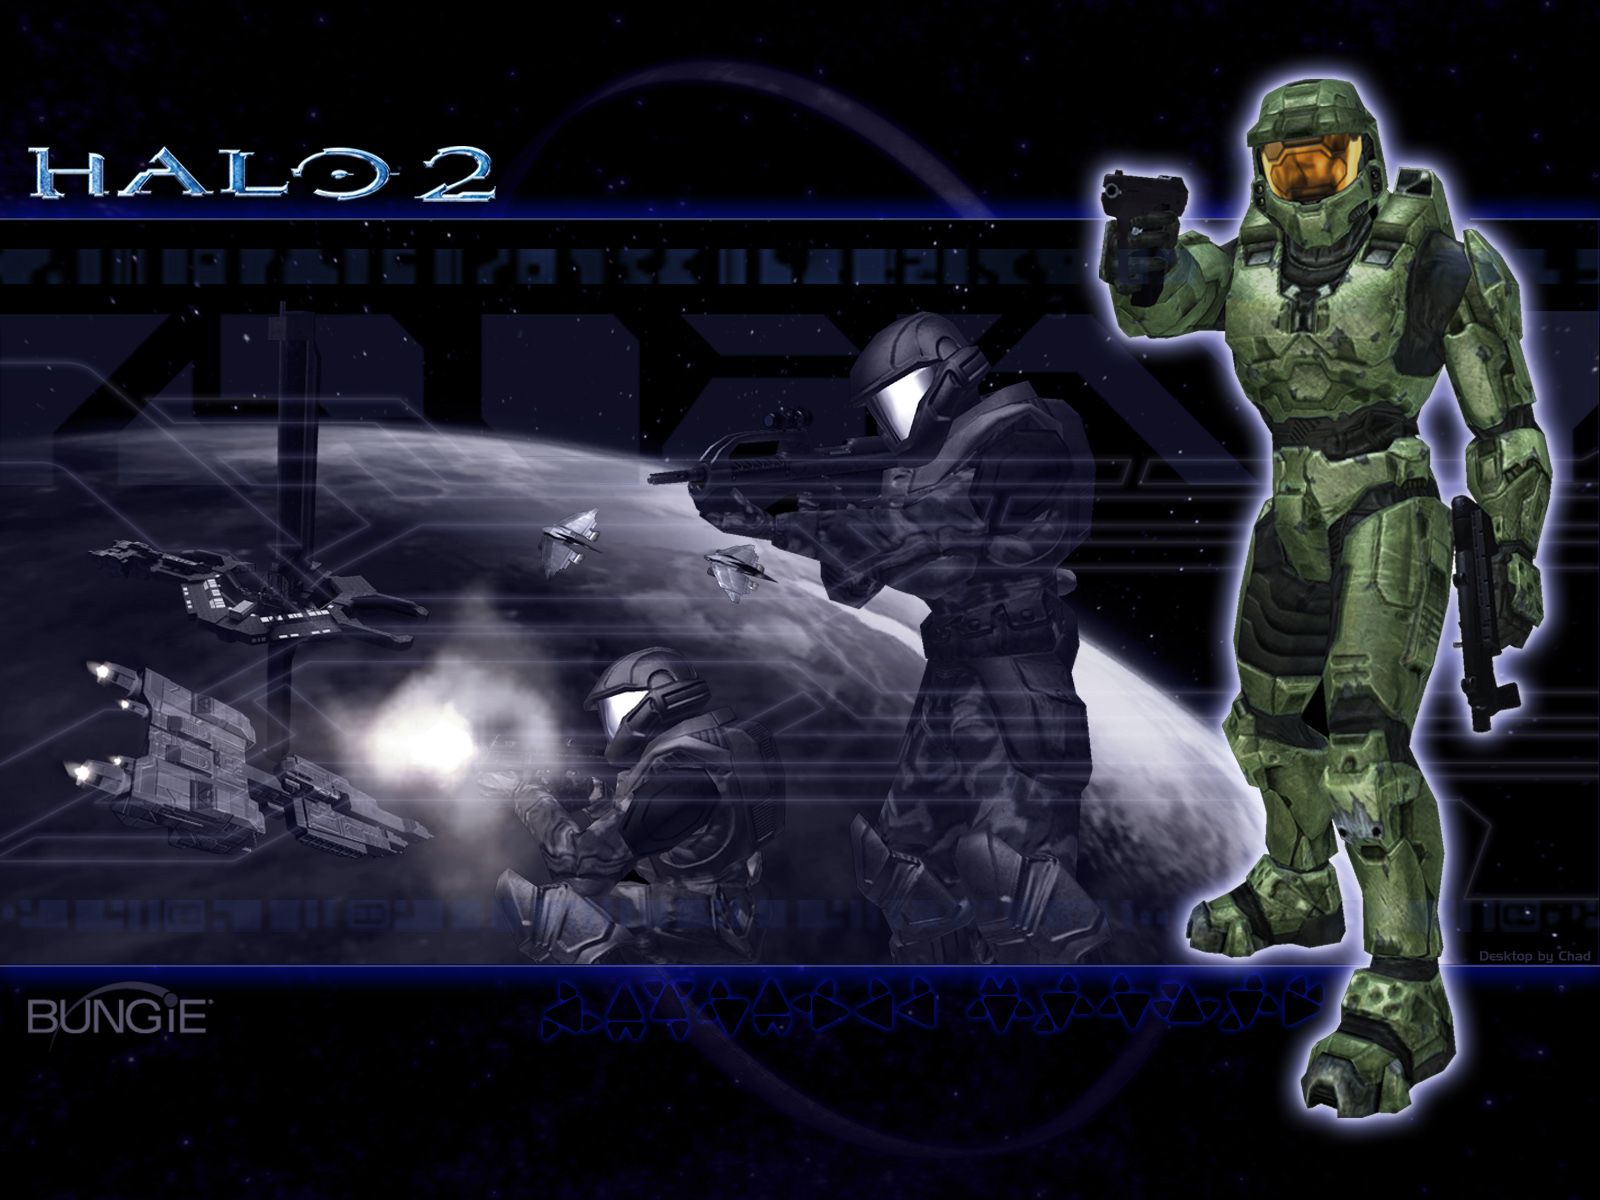 http://2.bp.blogspot.com/_RcasYPtxVvQ/TH-4VLpsyoI/AAAAAAAAAB0/zCPsRvlfU1A/s1600/wallpaper_chief_ODSTs_1600.jpg